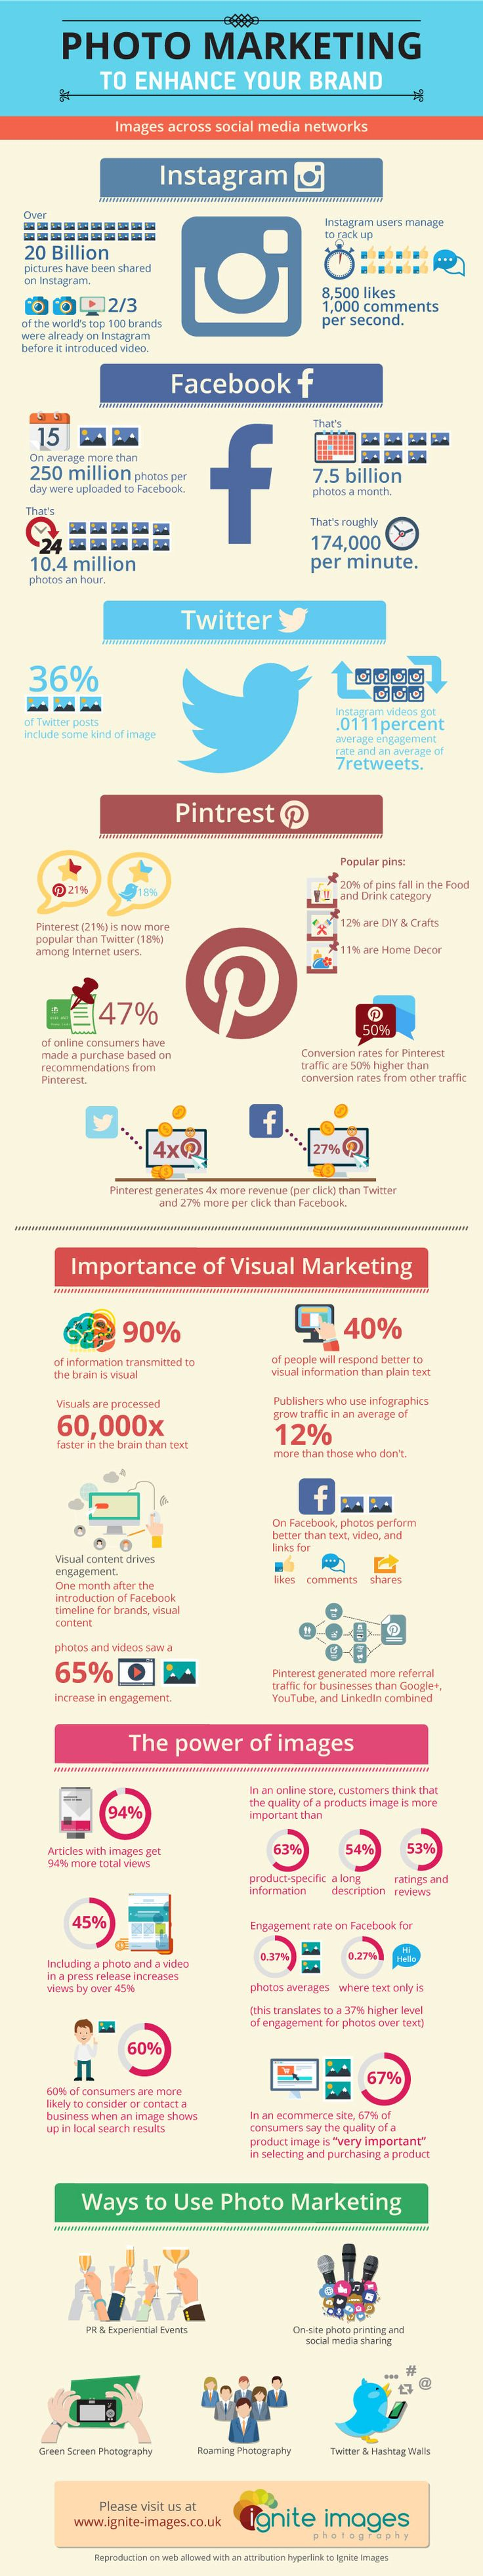 Visual Marketing: How Do People React To It? | Apartment Number 2 Tony Yeung Toronto Social Media Marketing Specialist